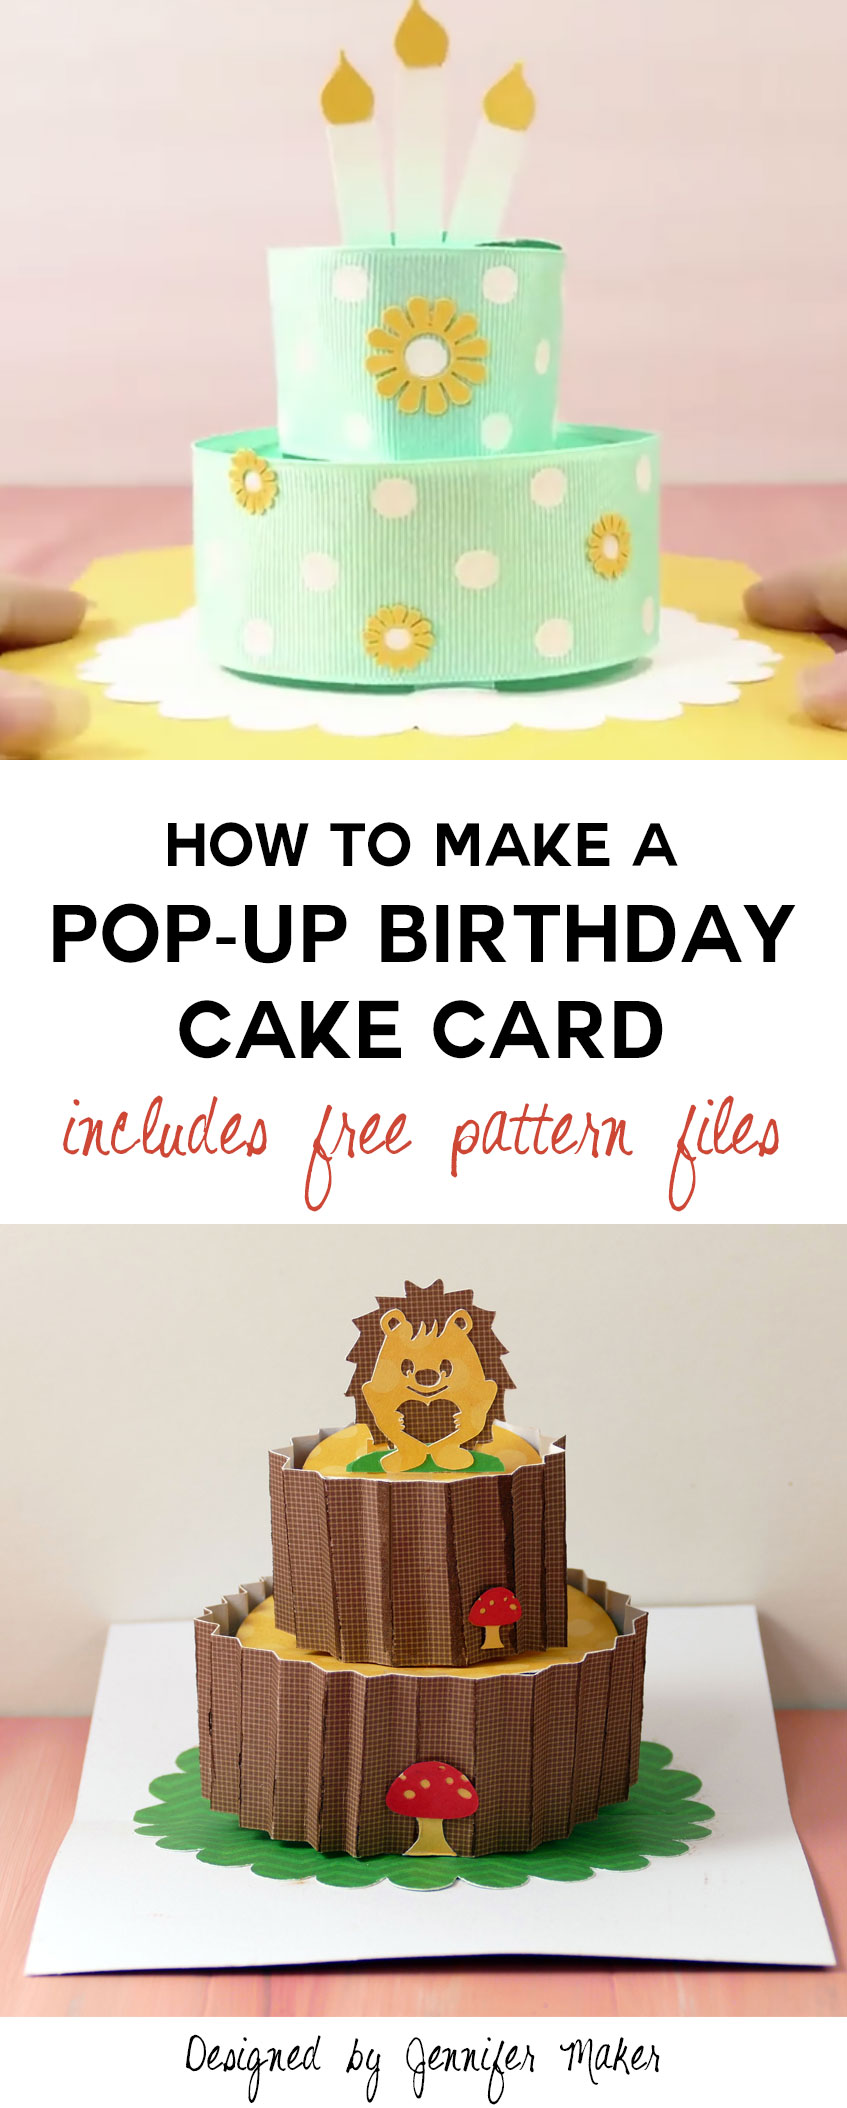 Imagechef Birthday Cake Maker : How to Make a Pop-Up Birthday Cake Card - Jennifer Maker